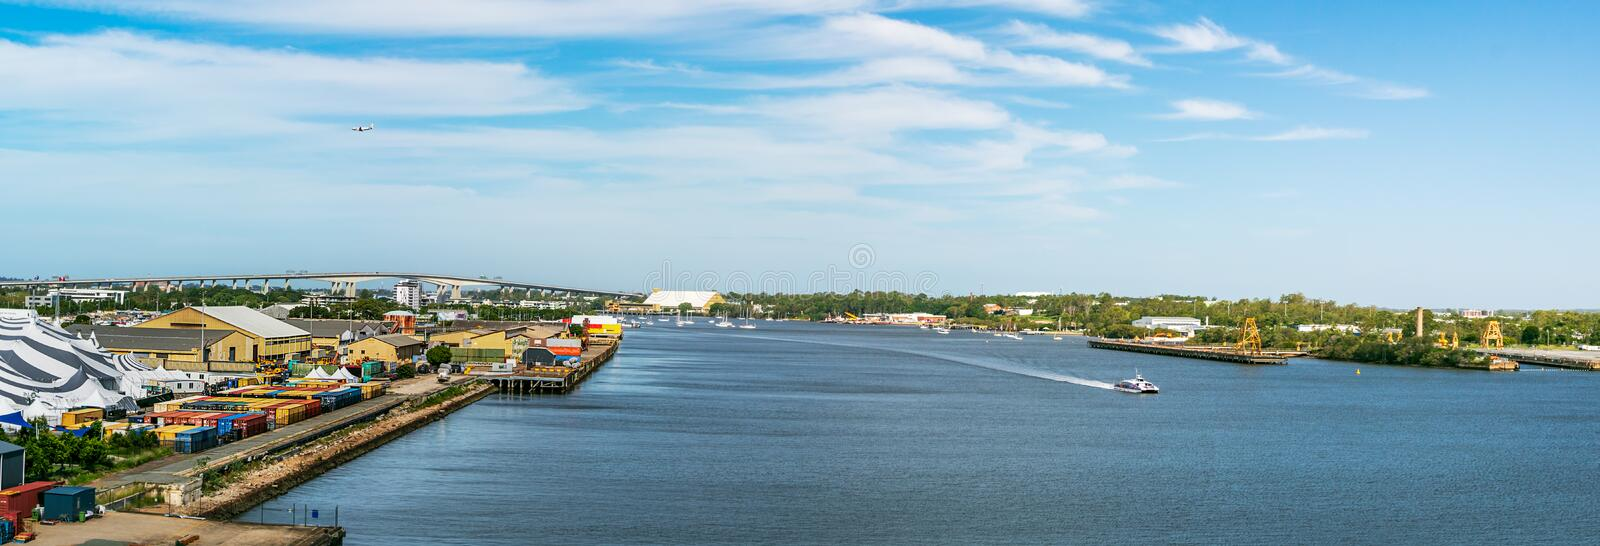 Panoramic view of the port and cruise terminal of Brisbane, Australia.  royalty free stock photo